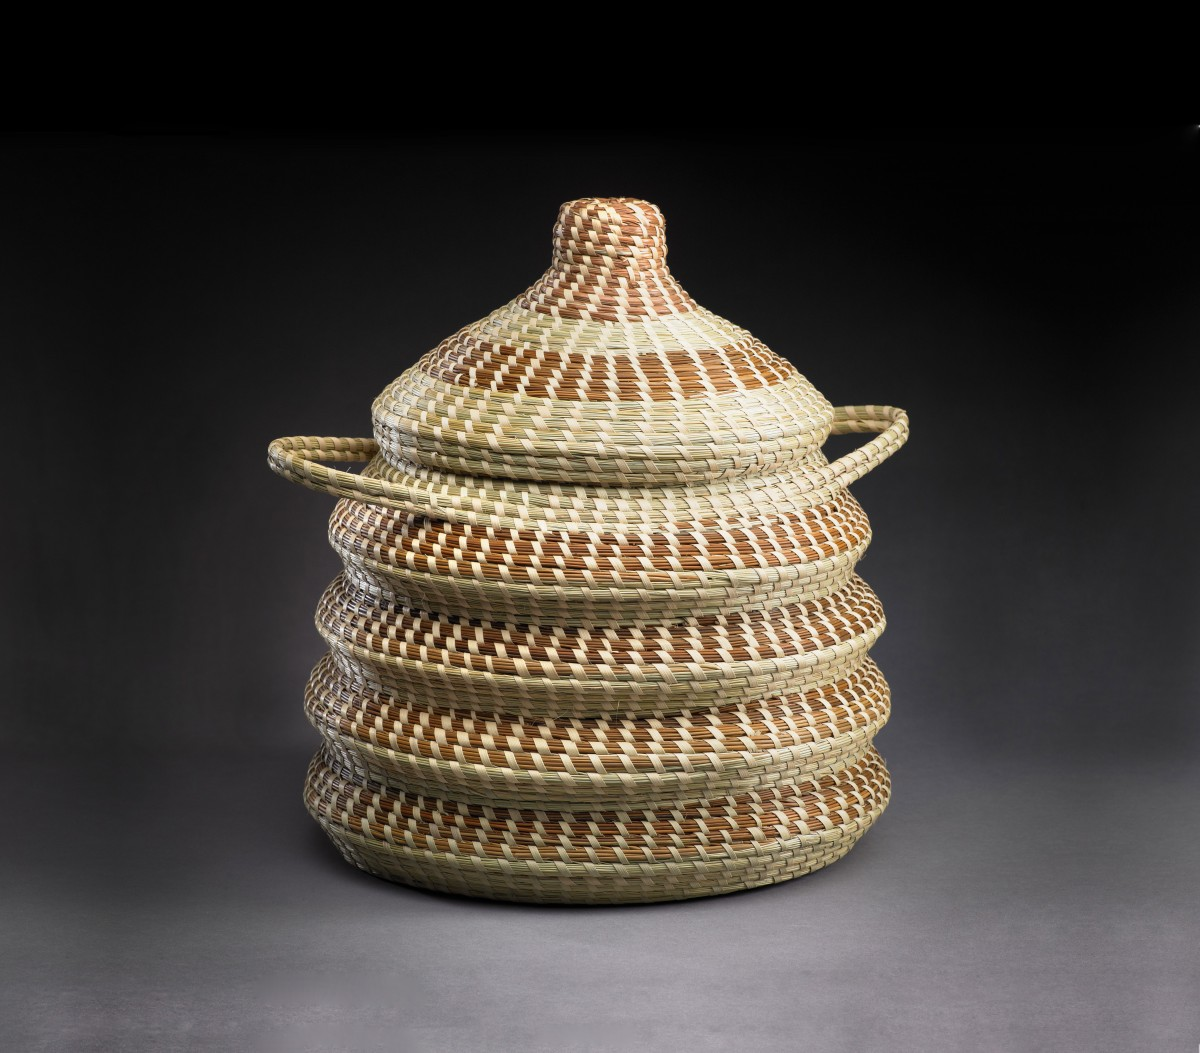 Elizabeth F. Kinlaw, American, In and out basket, 2012, Samuel P Harn Museum of Art Collection.